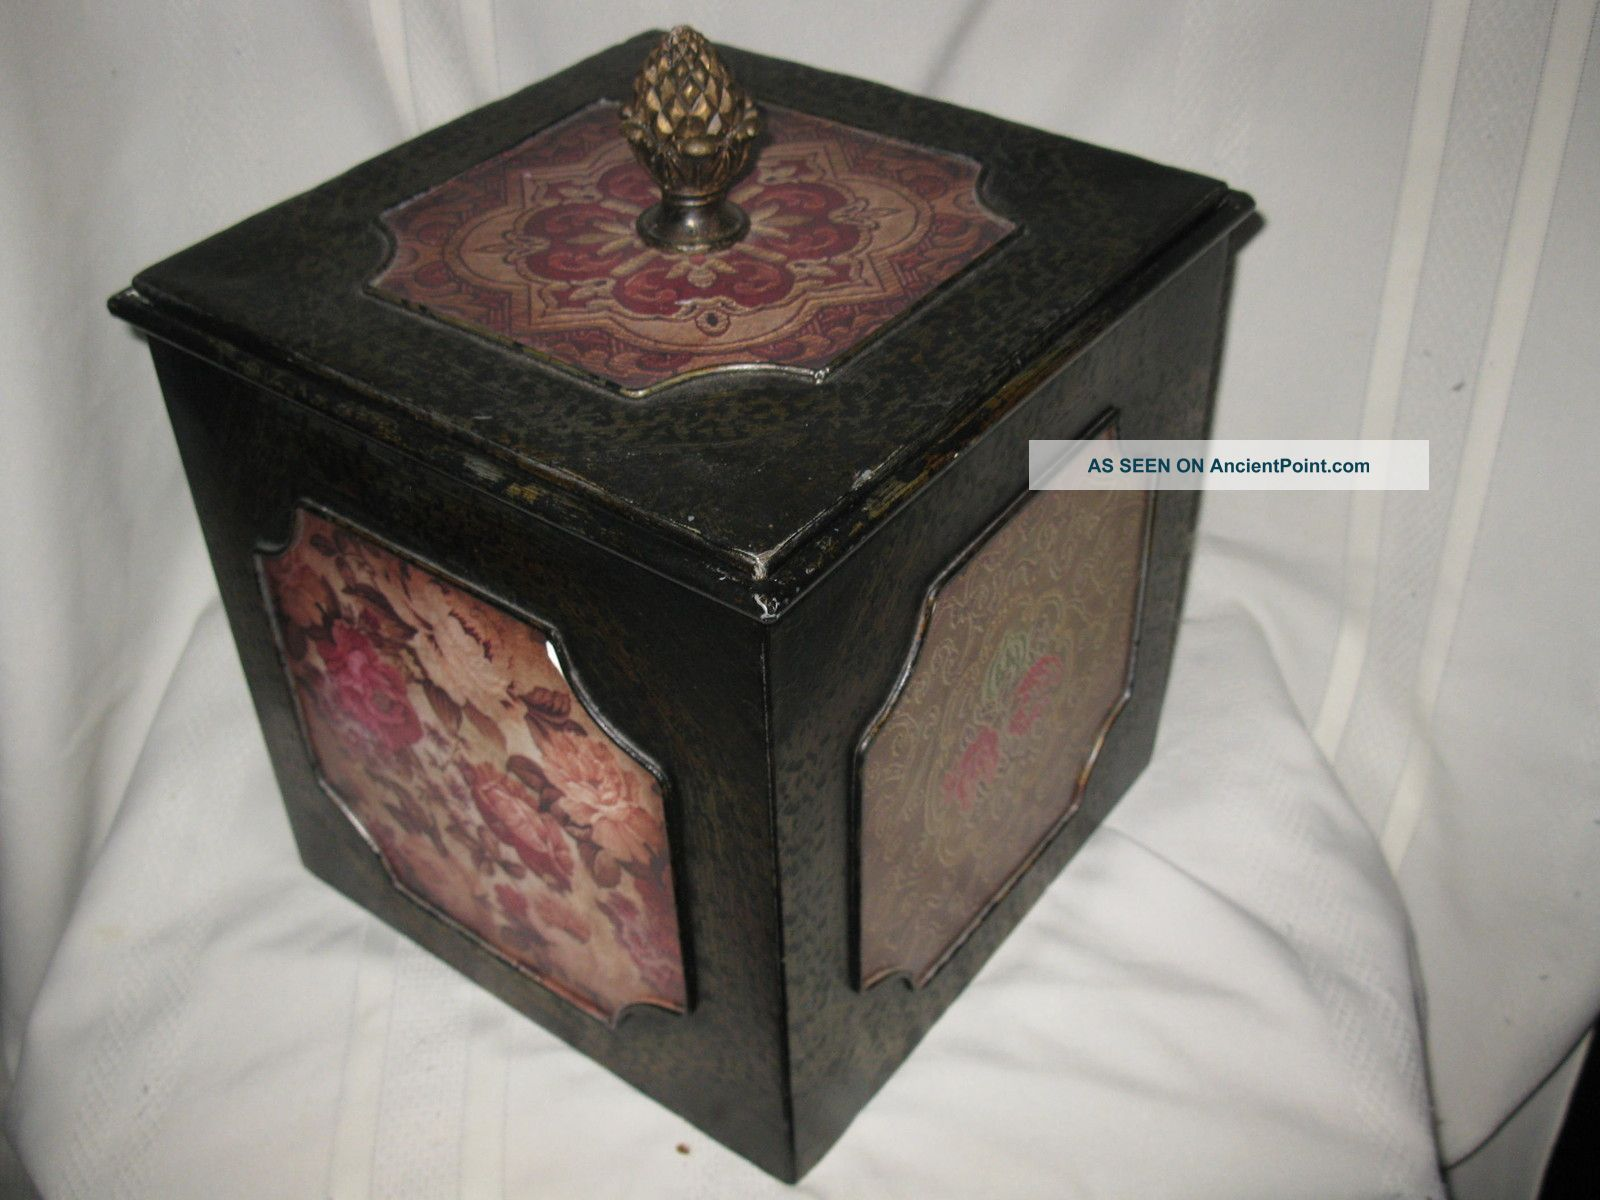 Heavy Tin Vintage Box With Chinese Patterns Inlaid. Boxes photo